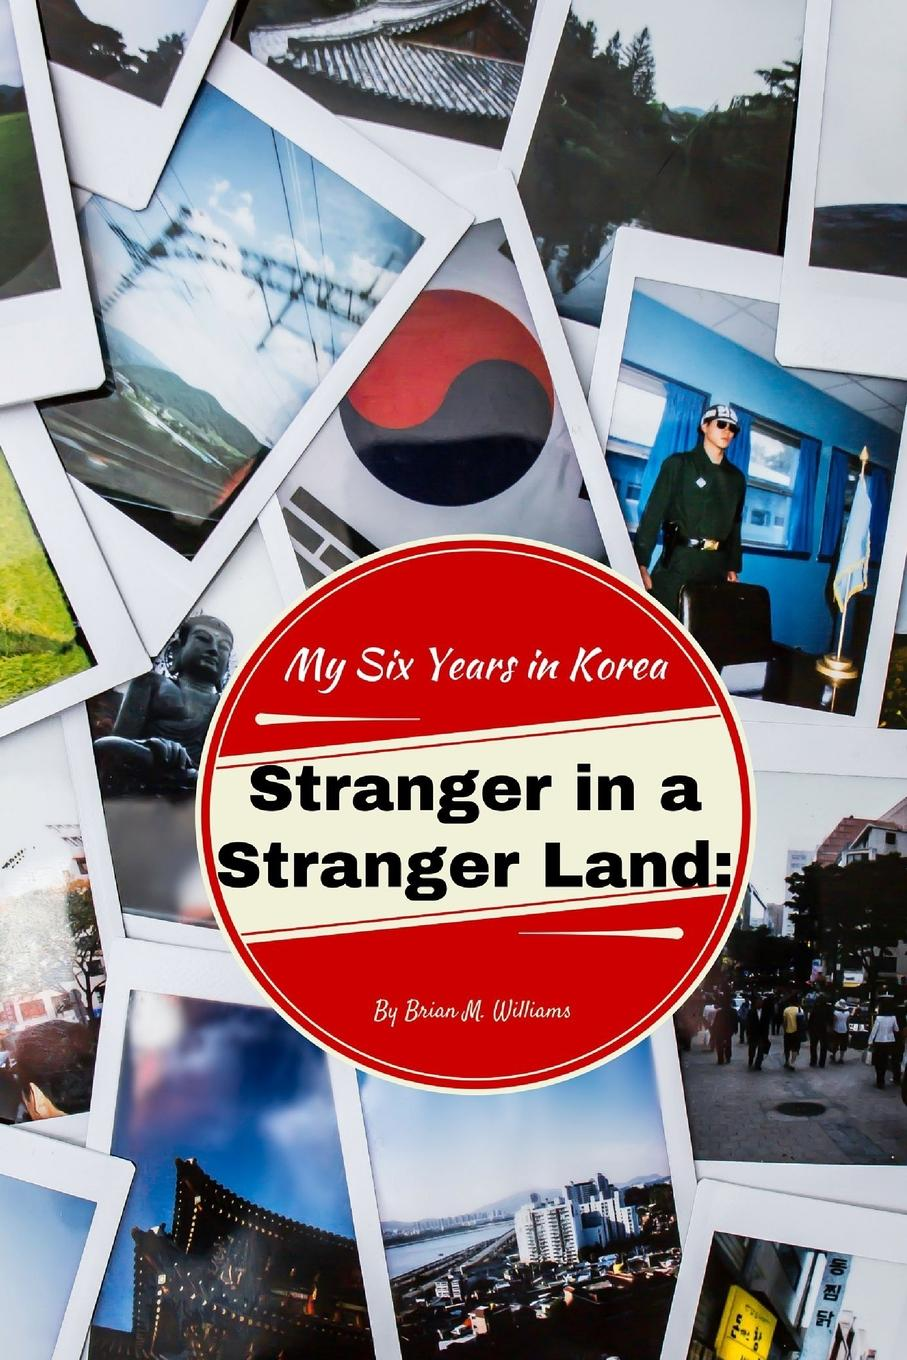 Brian M. Williams Stranger in a Stranger Land. My Six Years in Korea